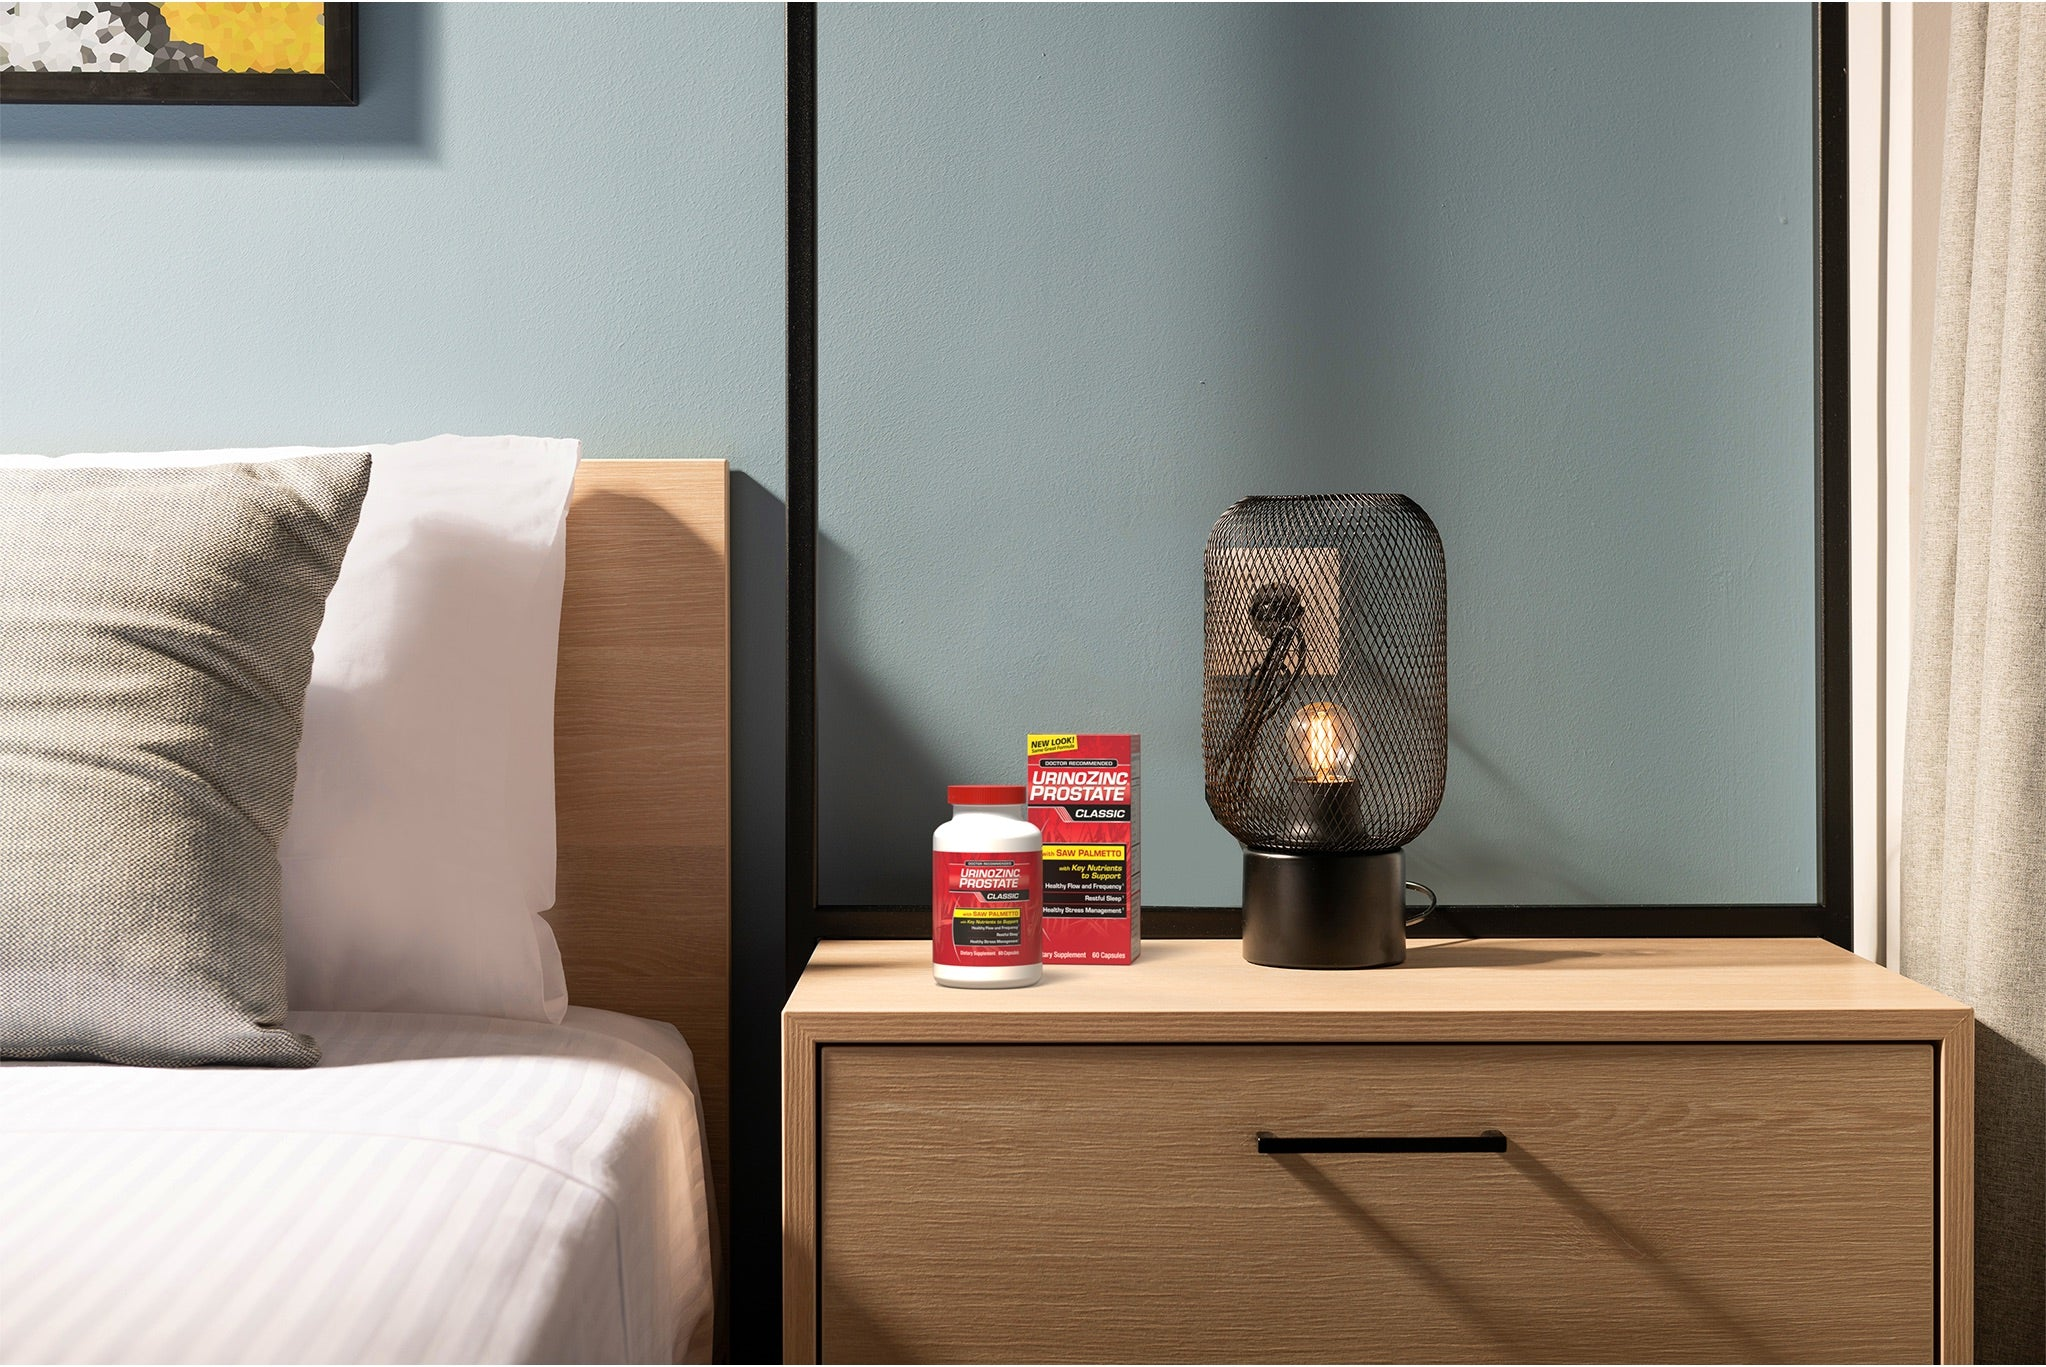 a photo of a bedroom side table with packages of UrinoZinc sitting on it